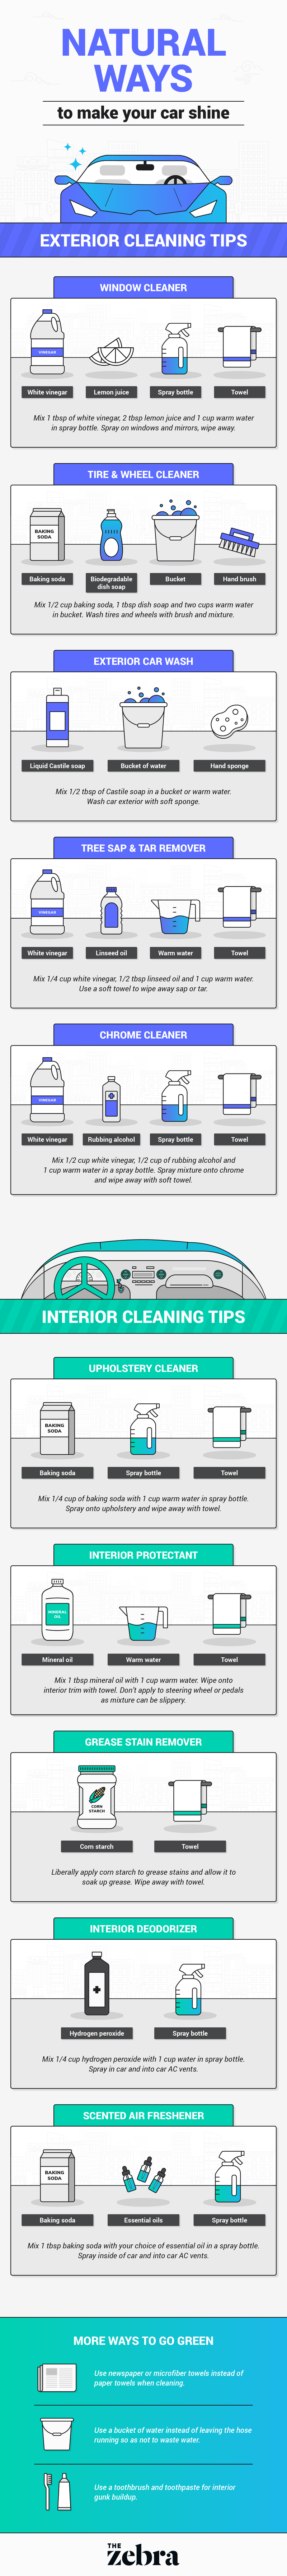 Natural ways to make your car shine